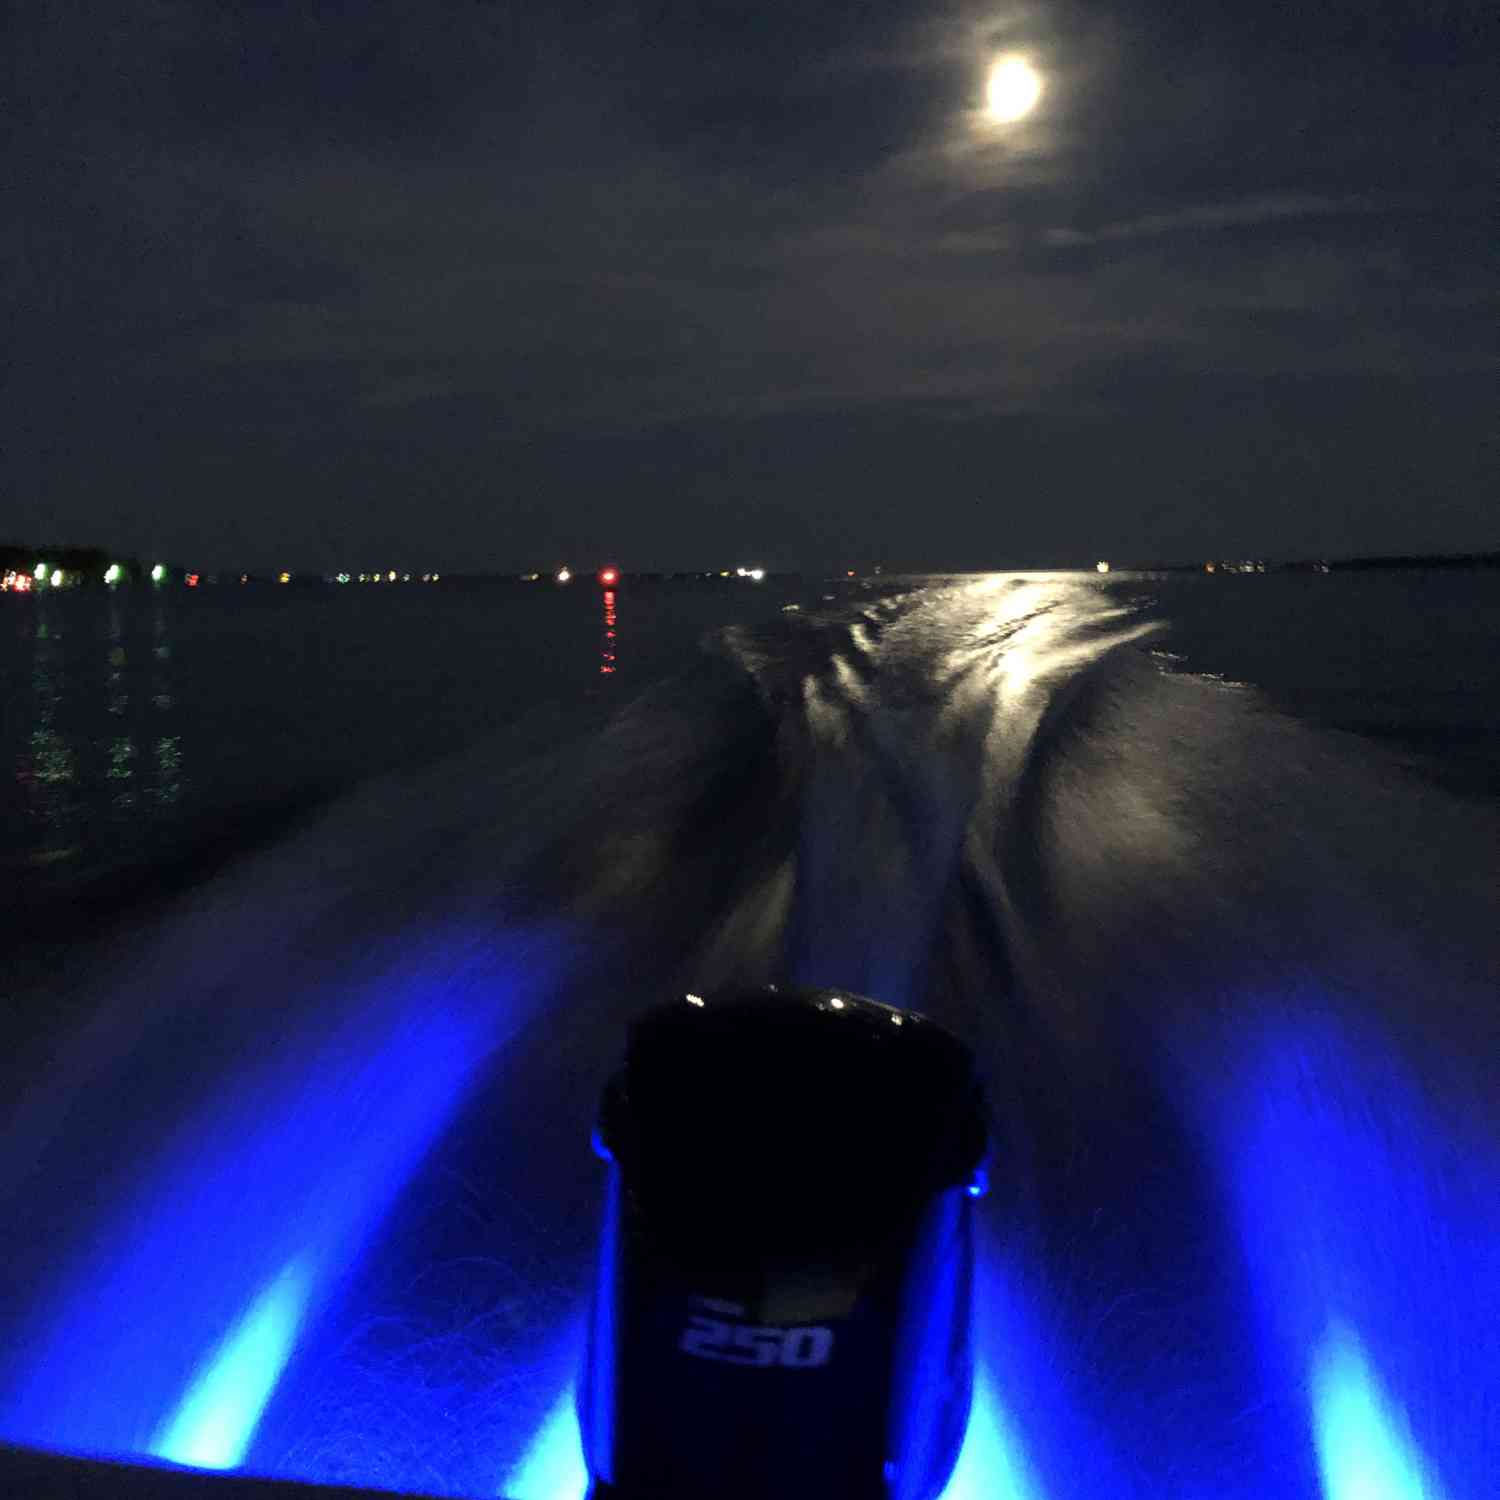 Title: Moon light cruise - On board their Sportsman Heritage 231 Center Console - Location: Charleston, SC. Participating in the Photo Contest #SportsmanOctober2019